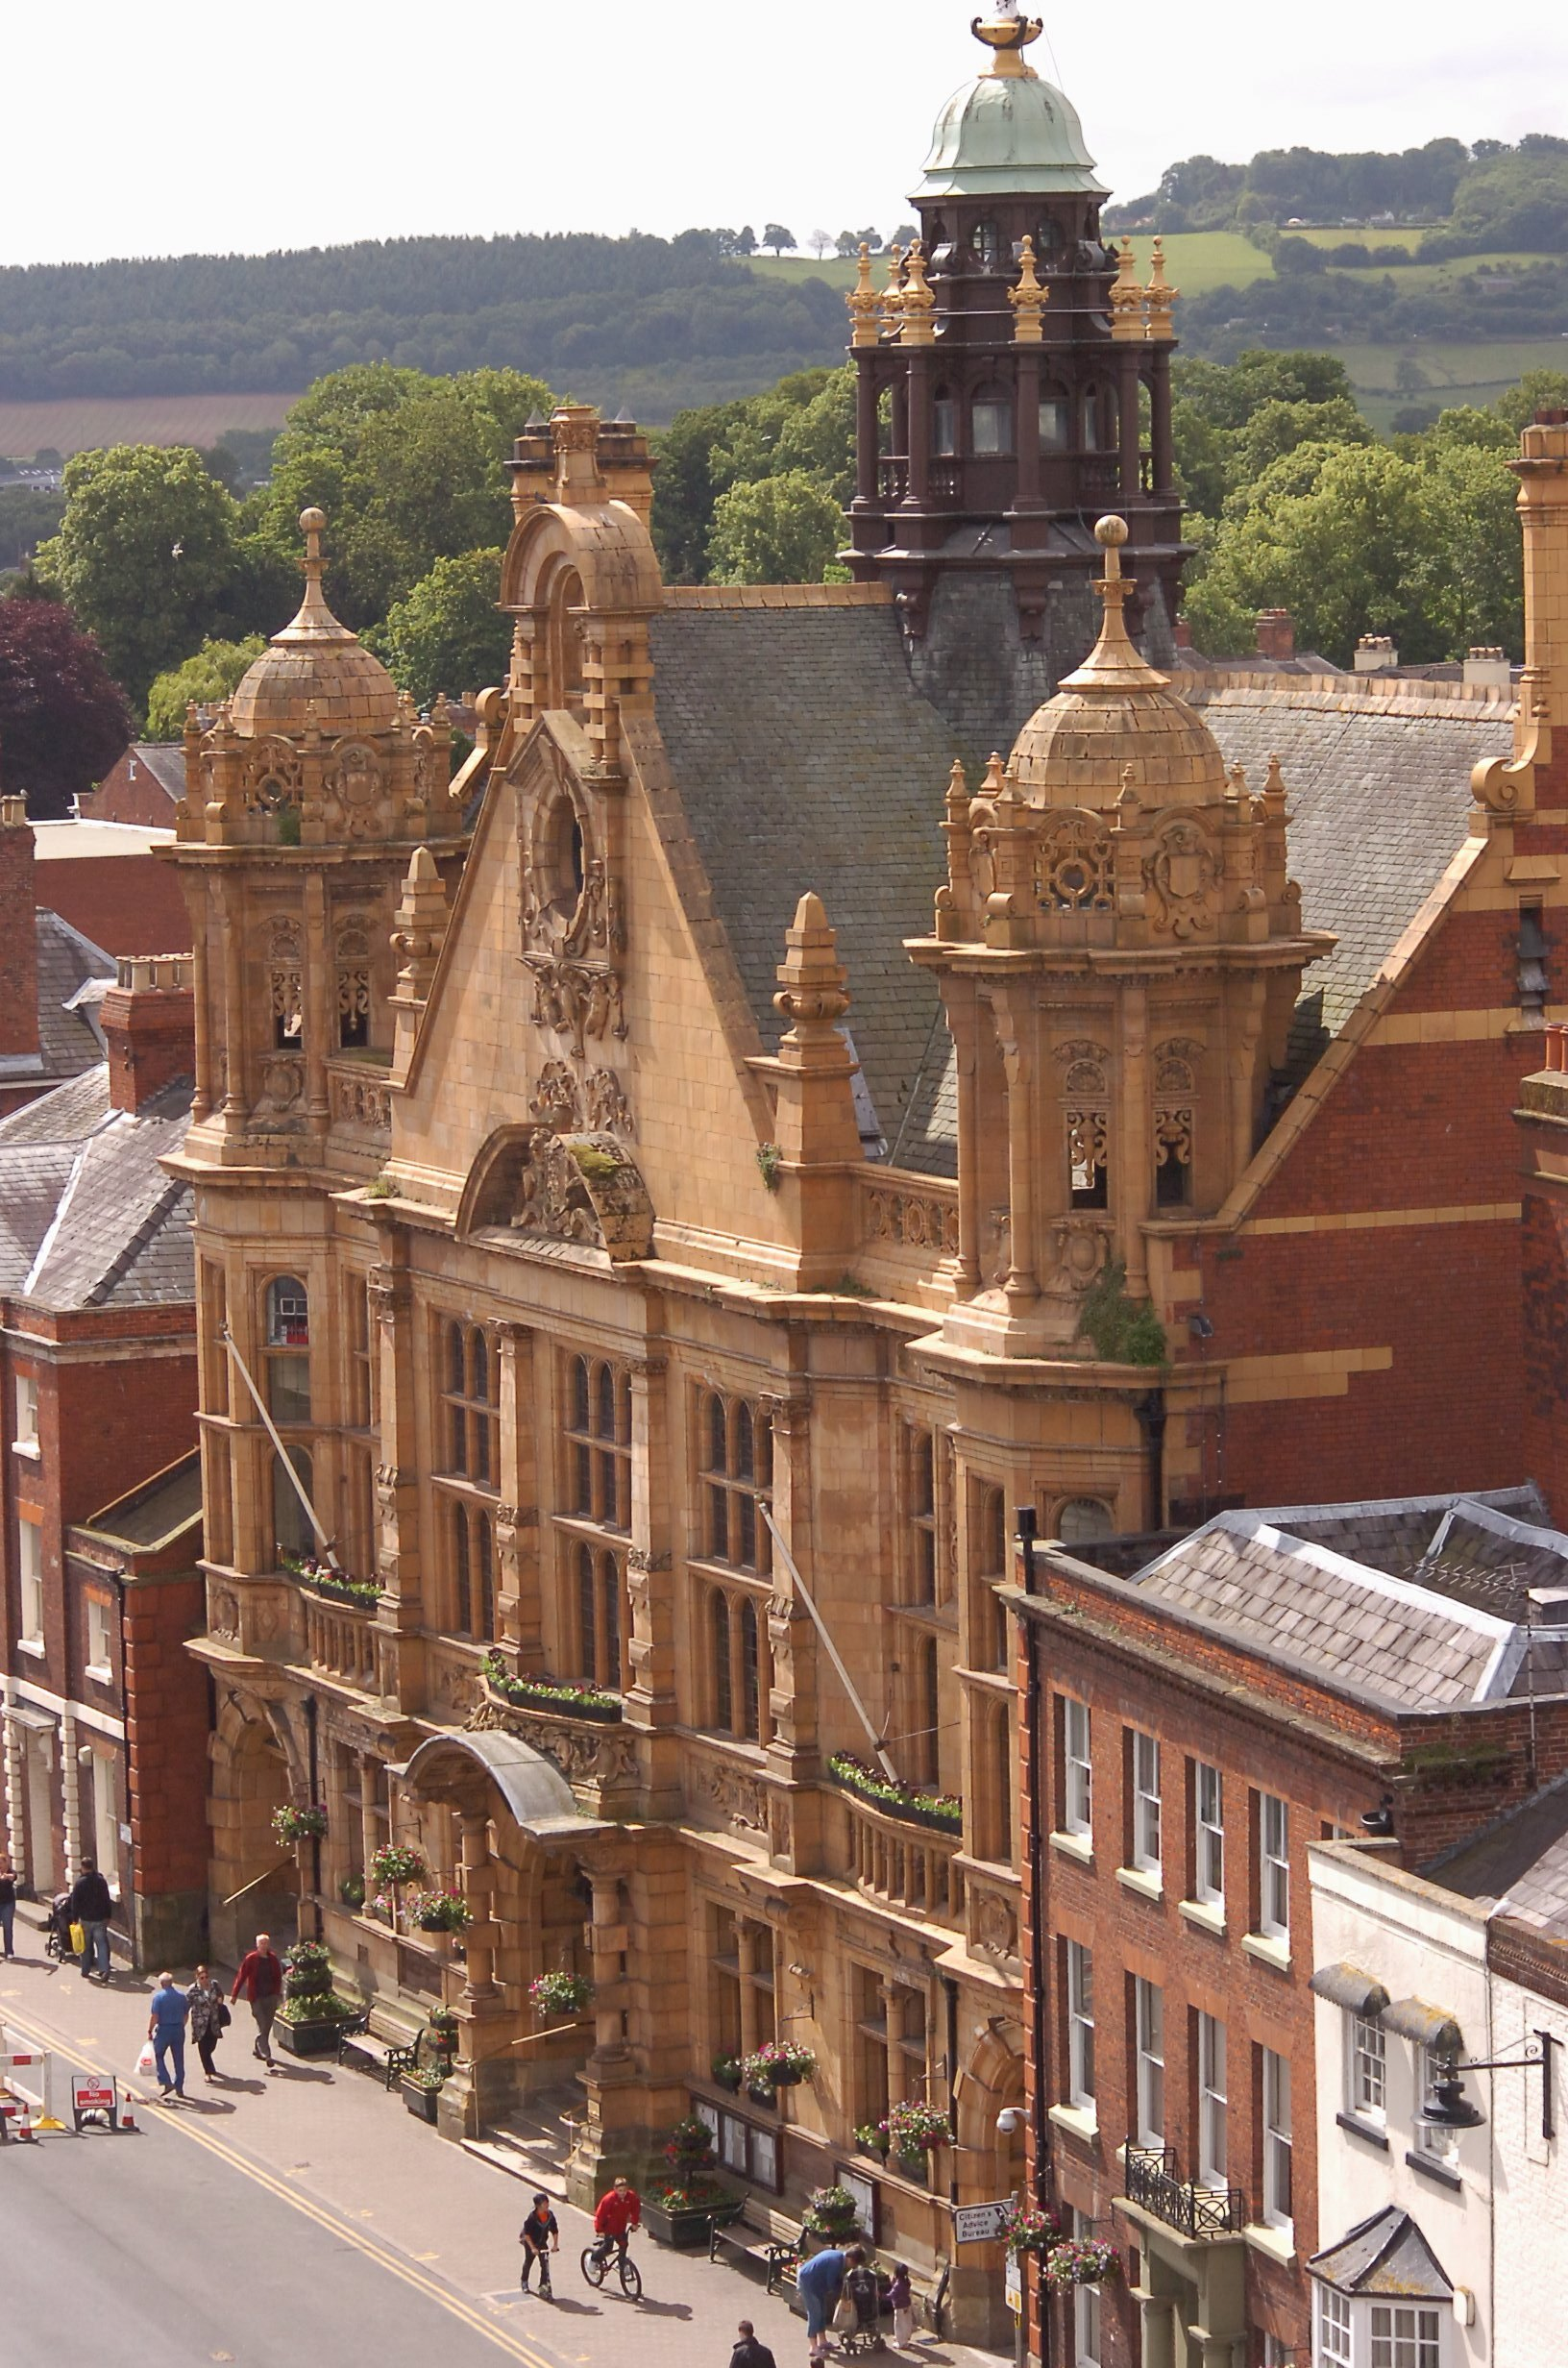 Hereford Town Hall, where inquests take place.